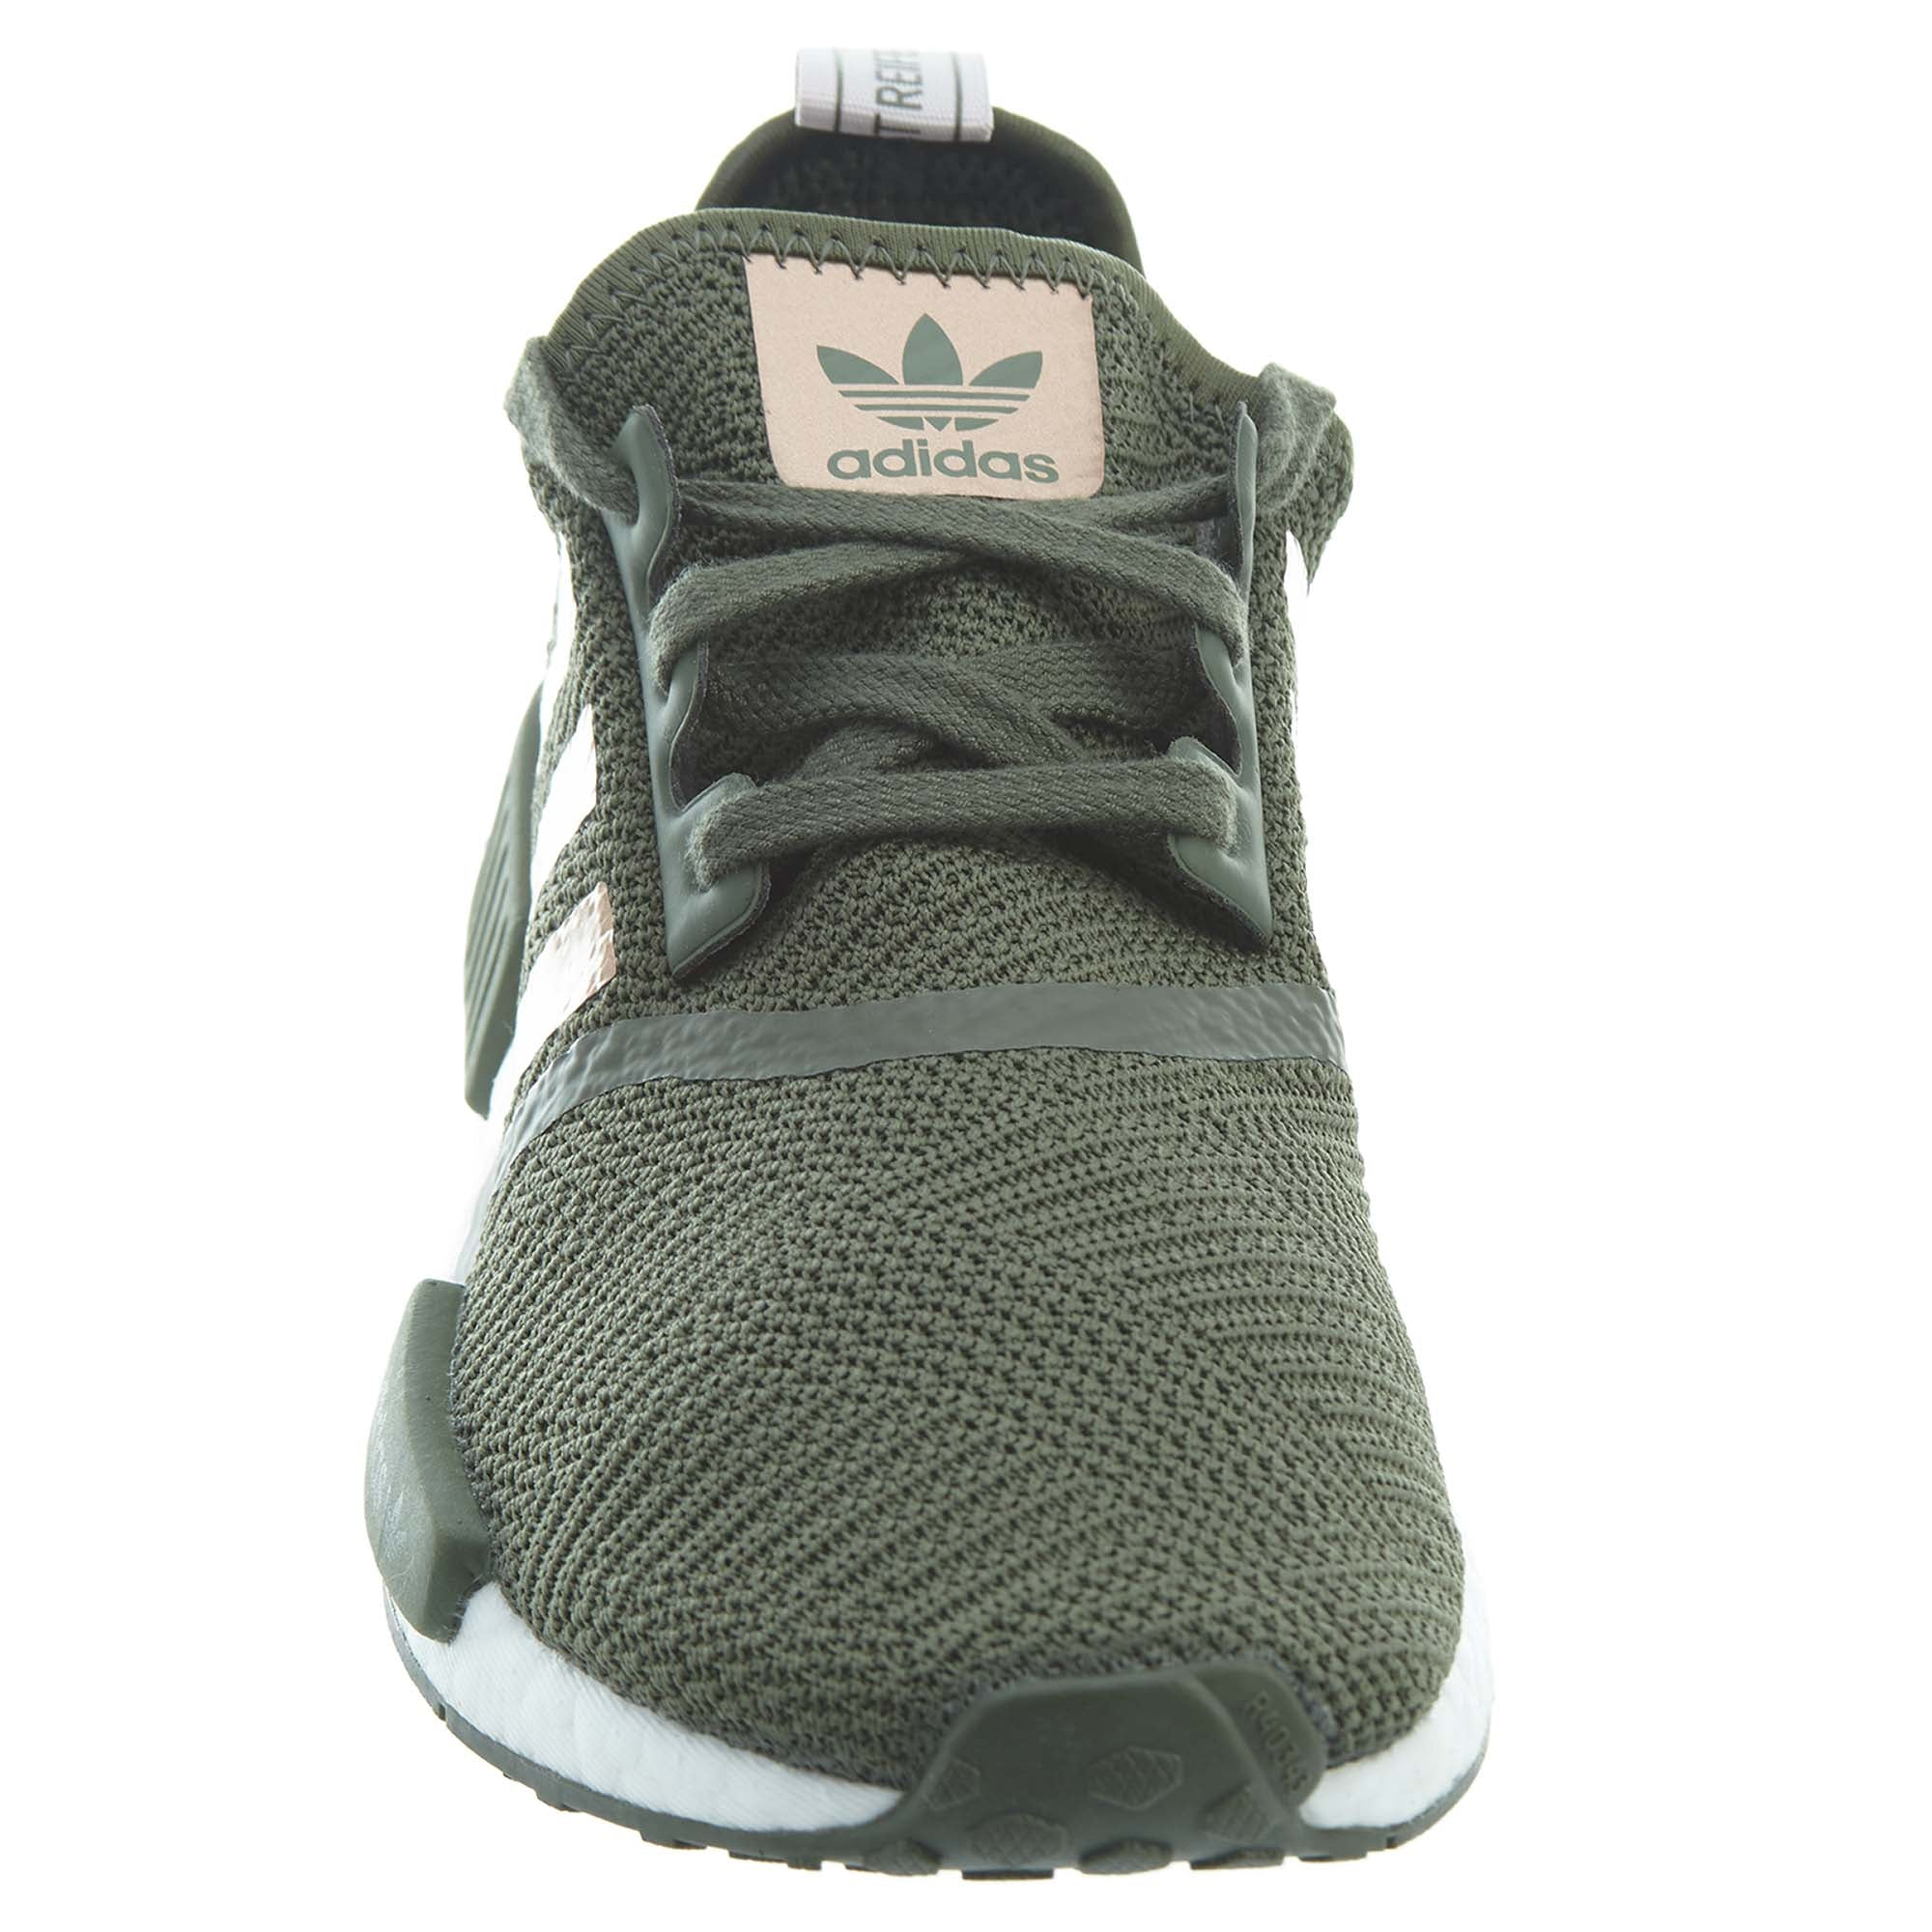 Adidas Nmd_r1 Womens Style : F97172-Green